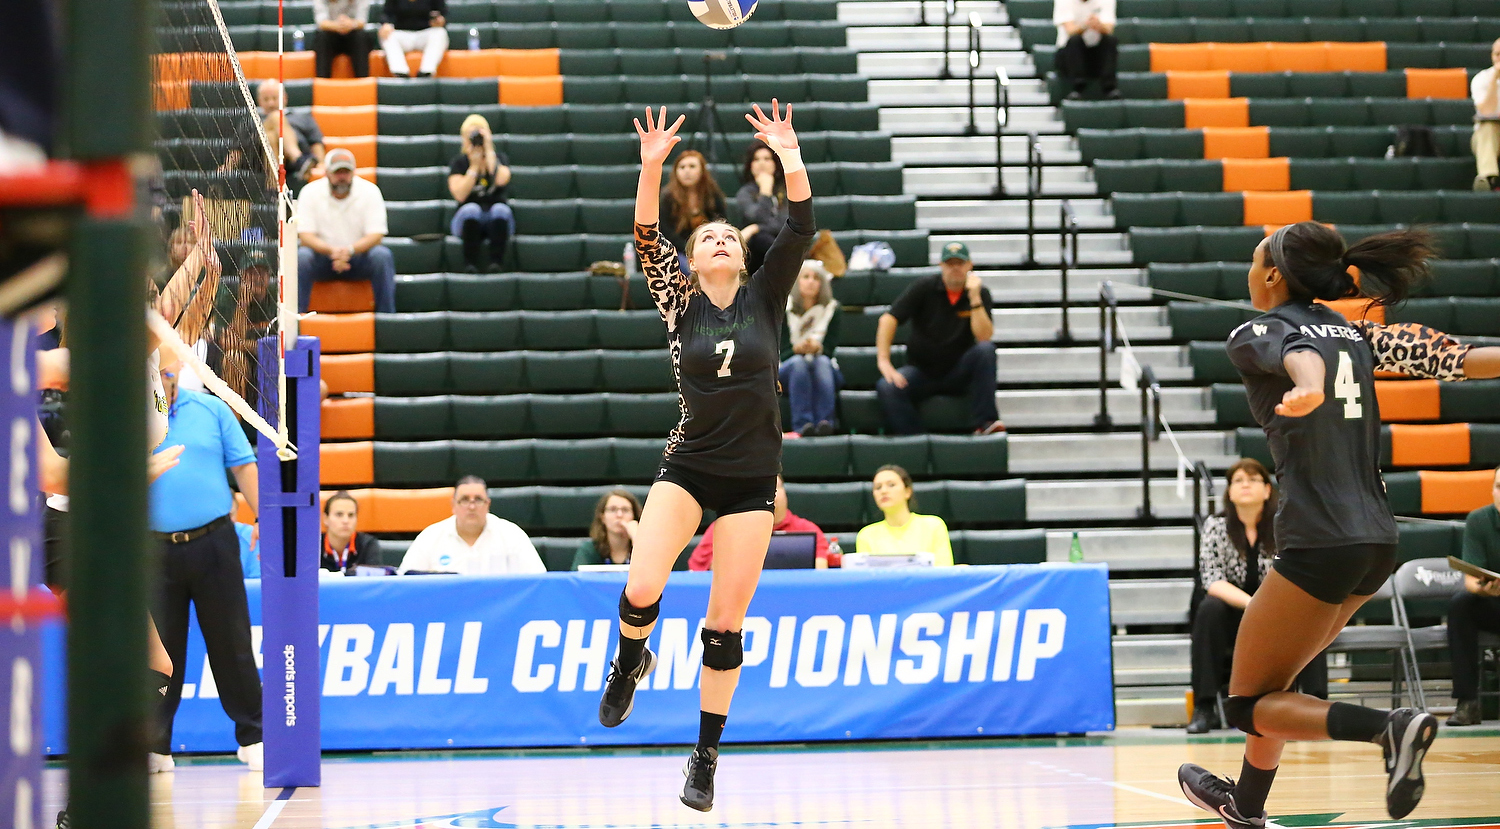 No. 19 Volleyball drops to No. 7 Southwestern in NCAA Championship